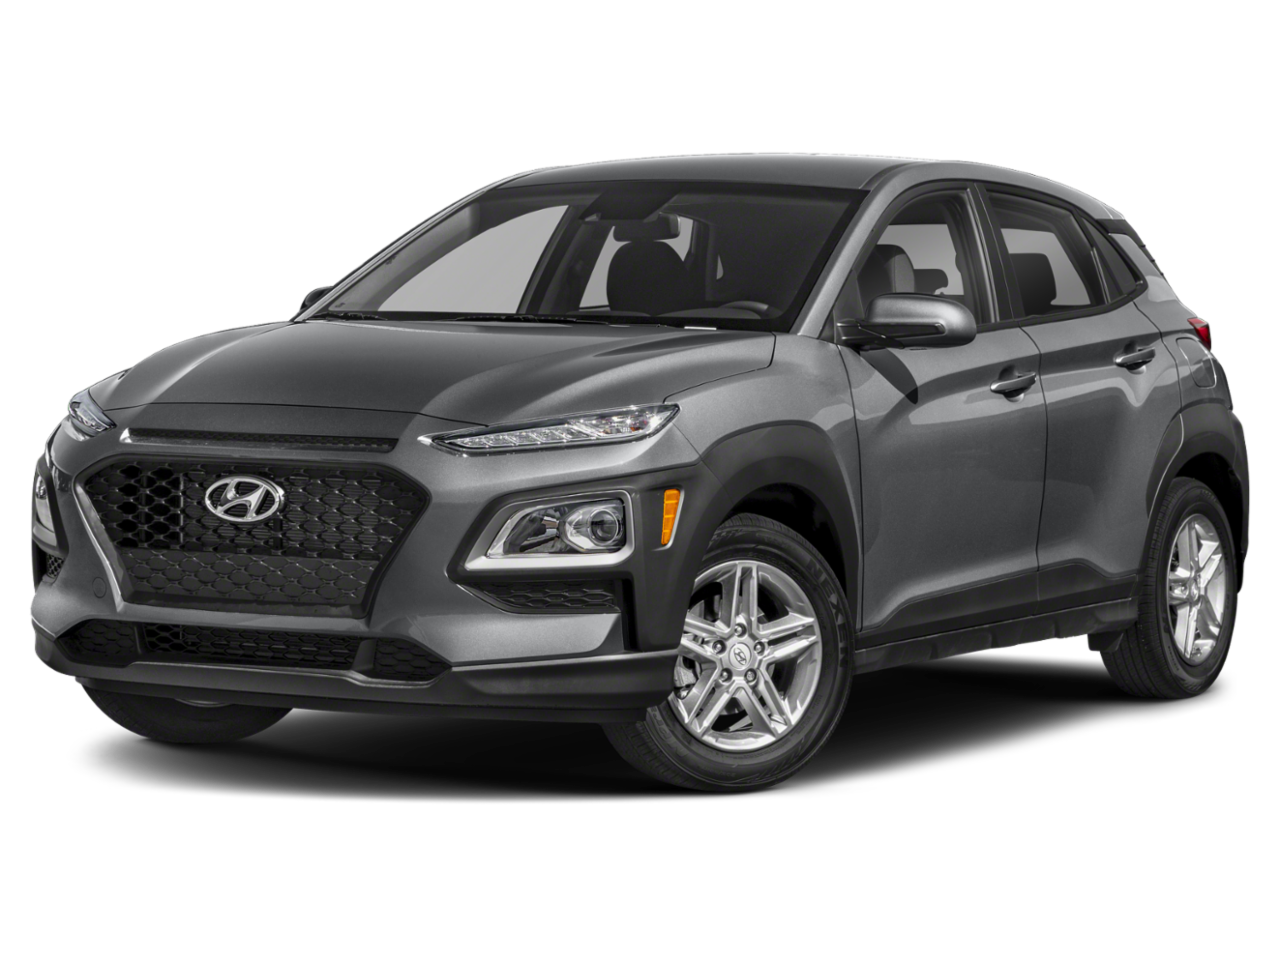 Buyer's Guide: 2021 Hyundai Kona